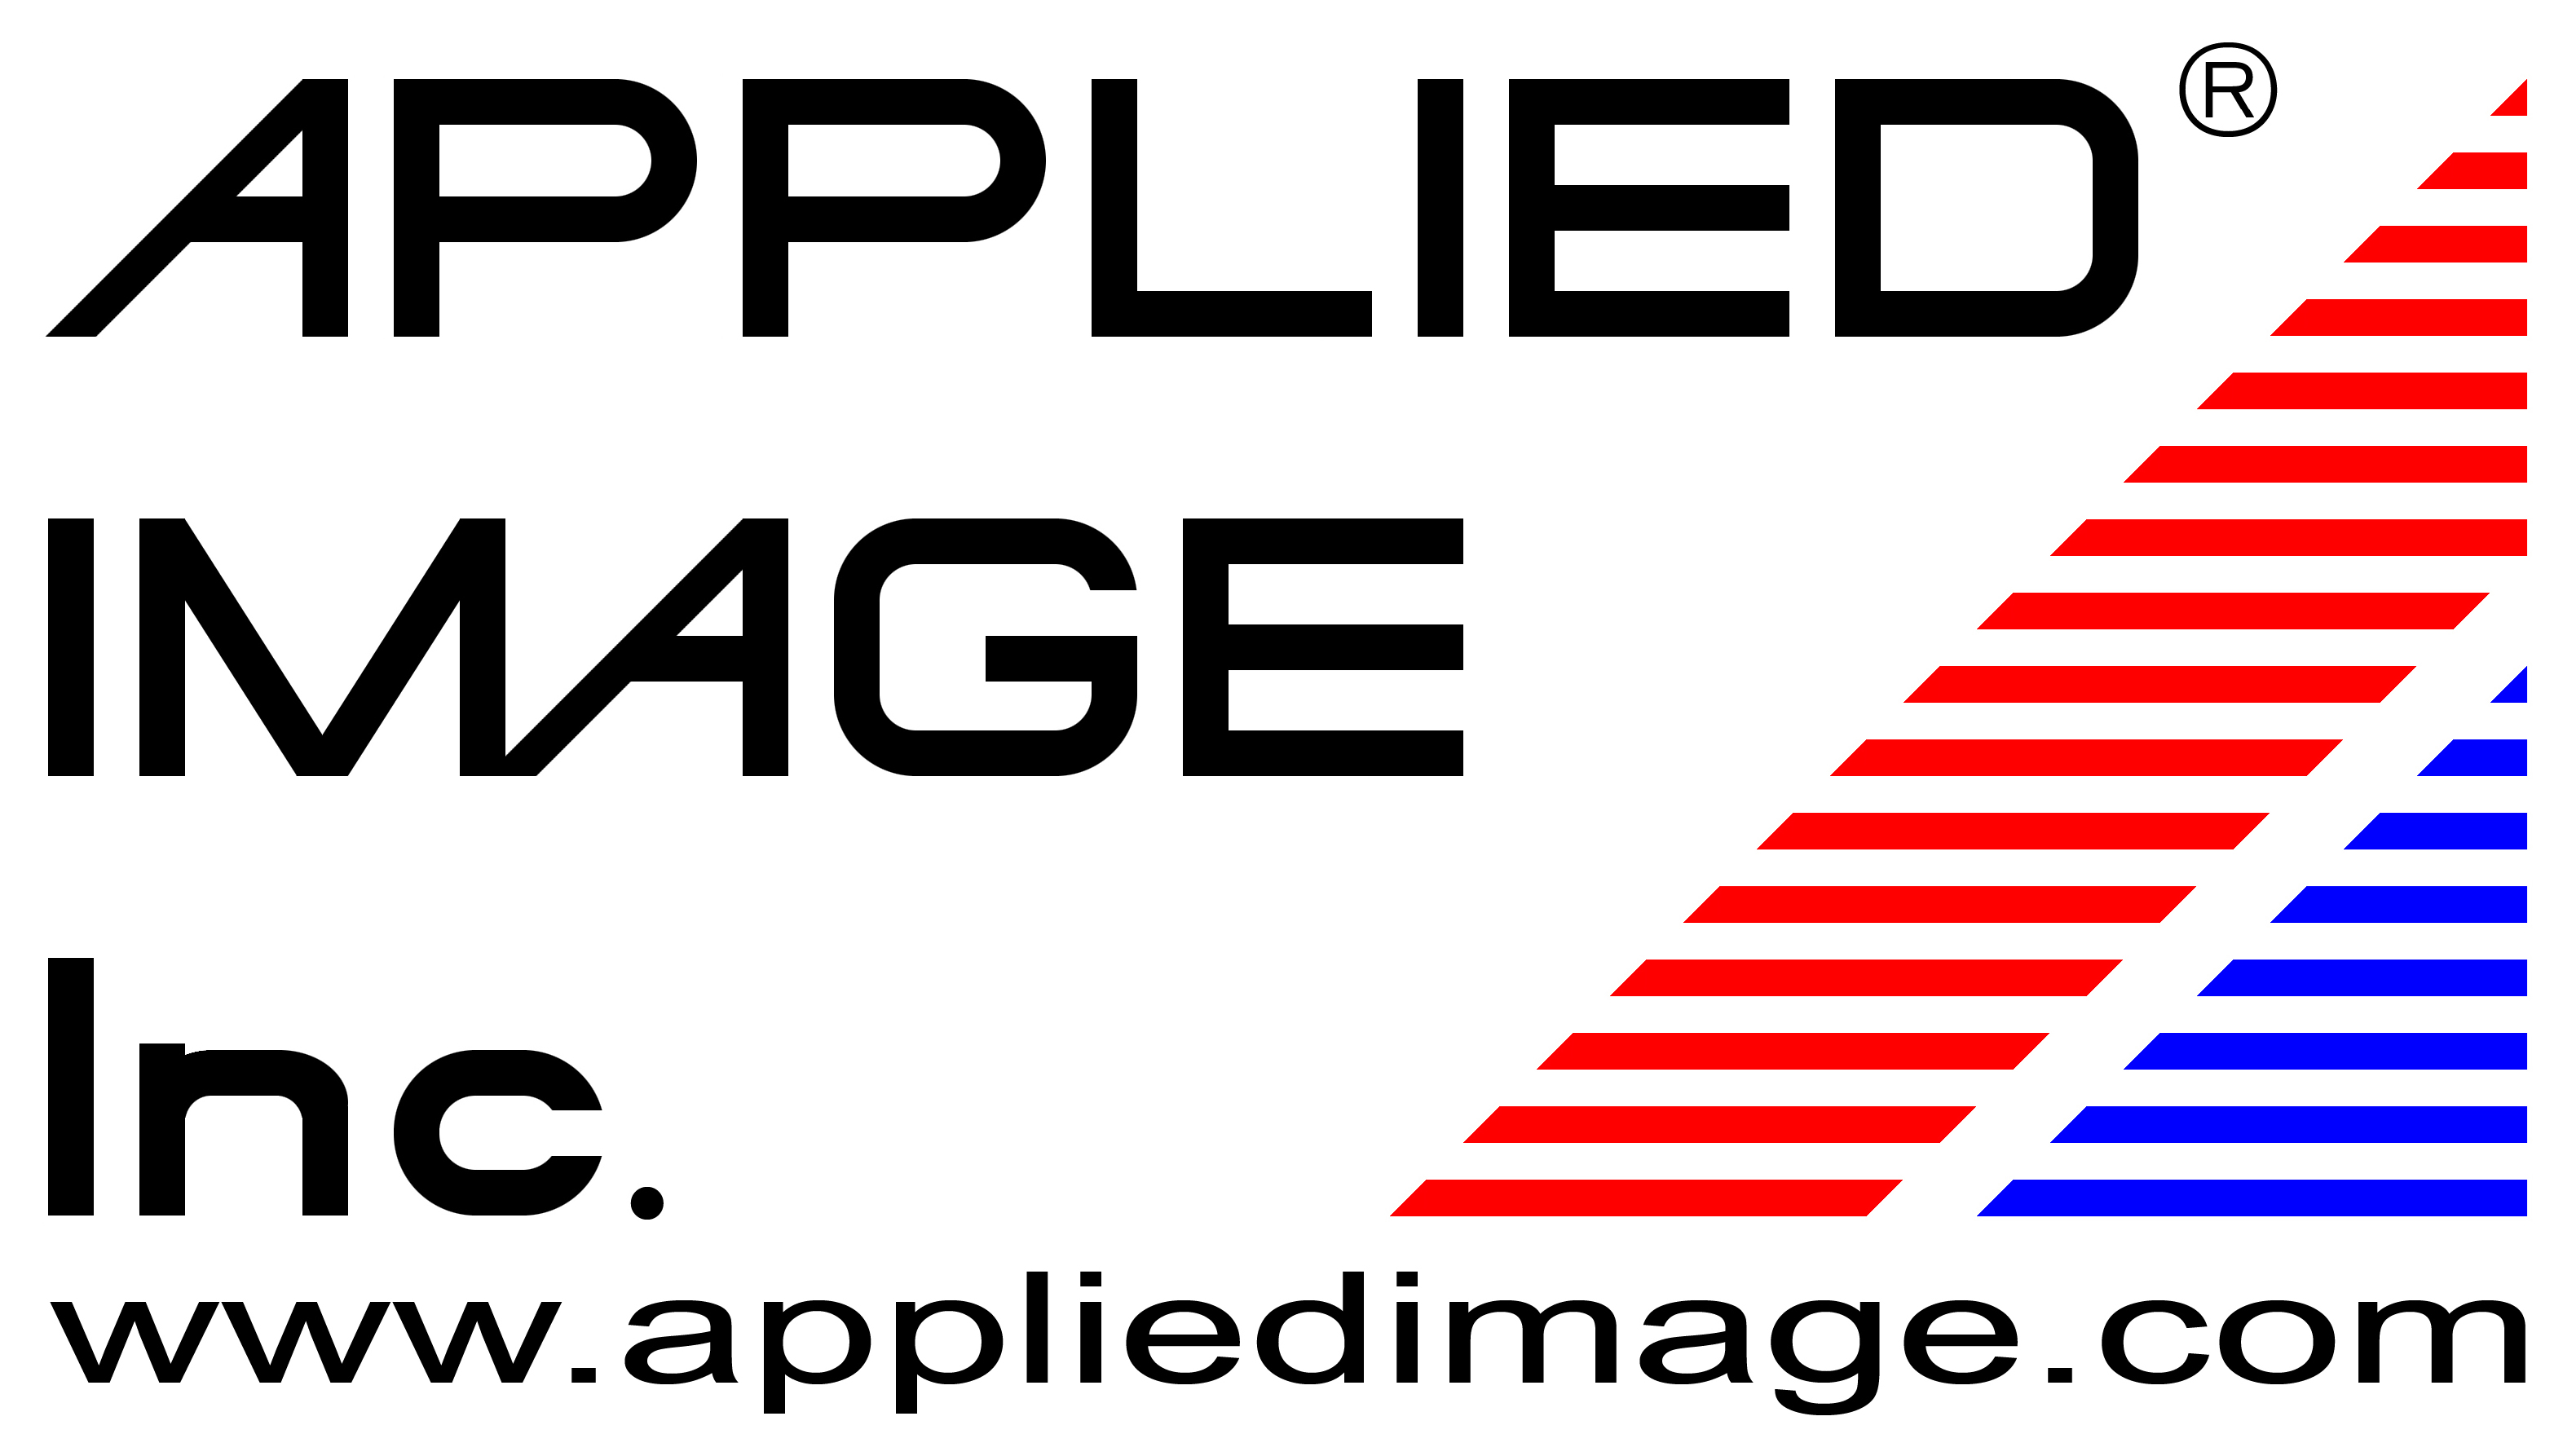 Applied Image